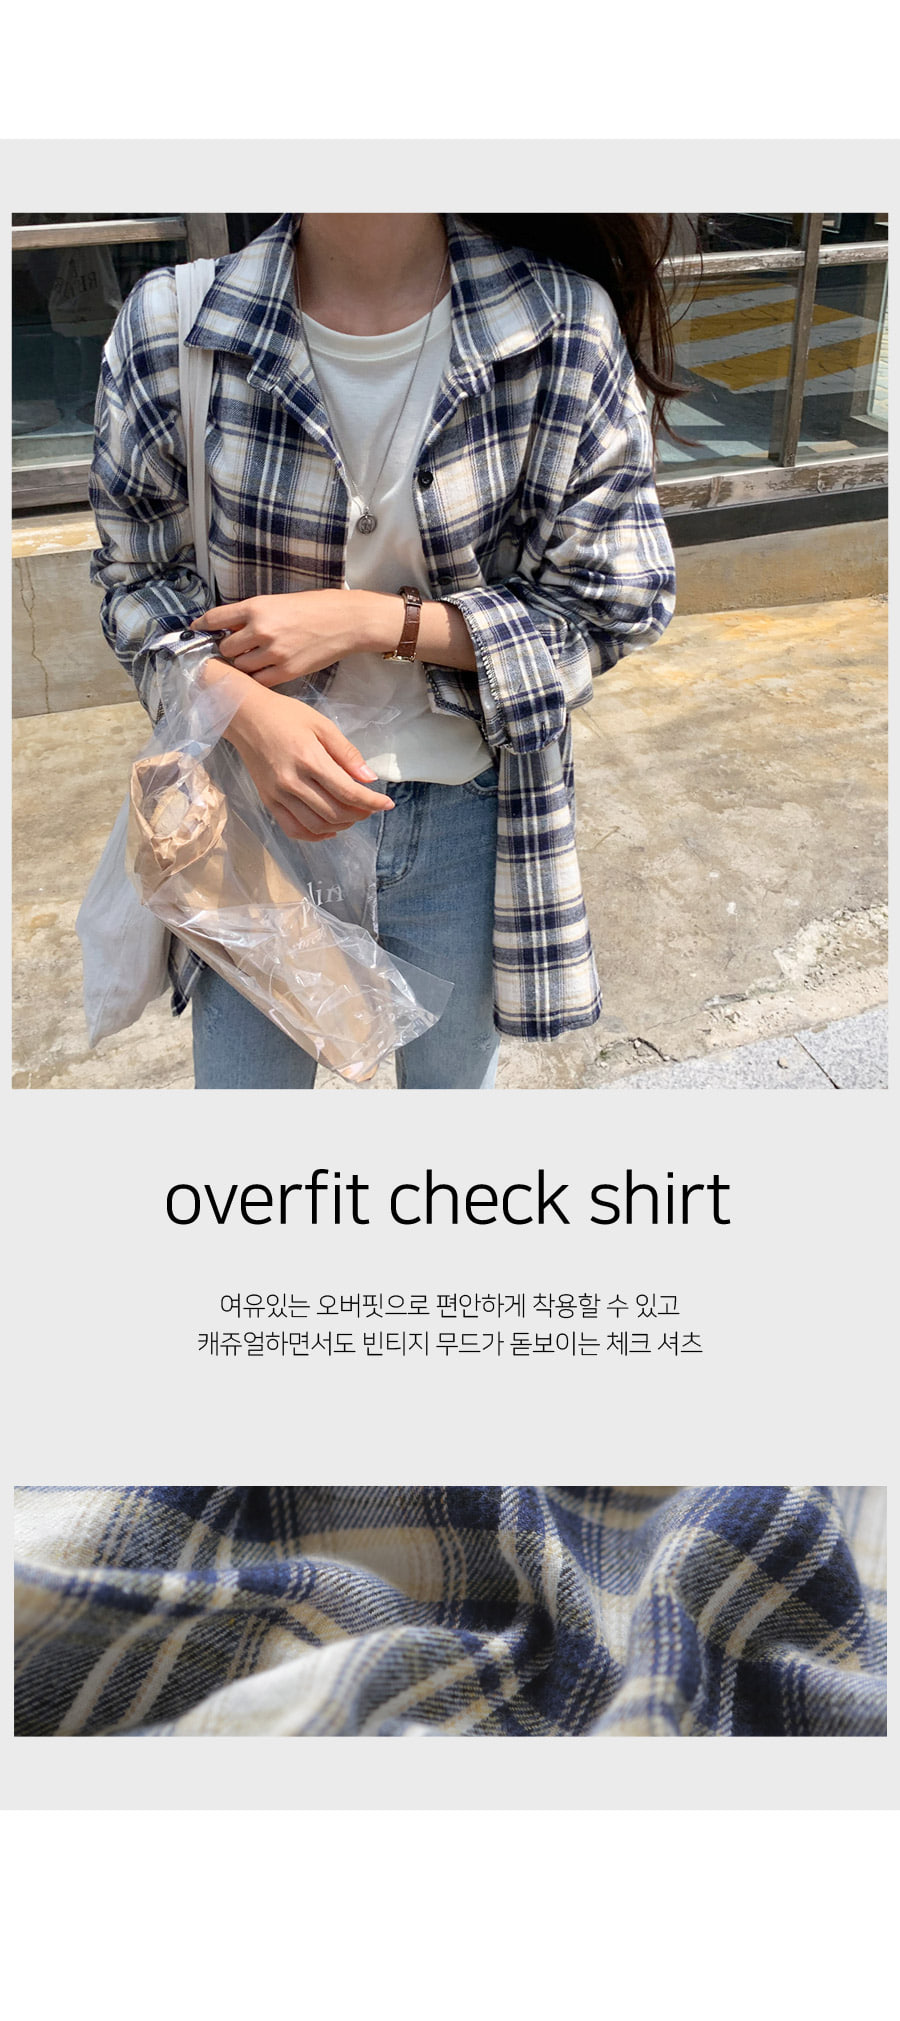 Fall & Overfit Check Southern